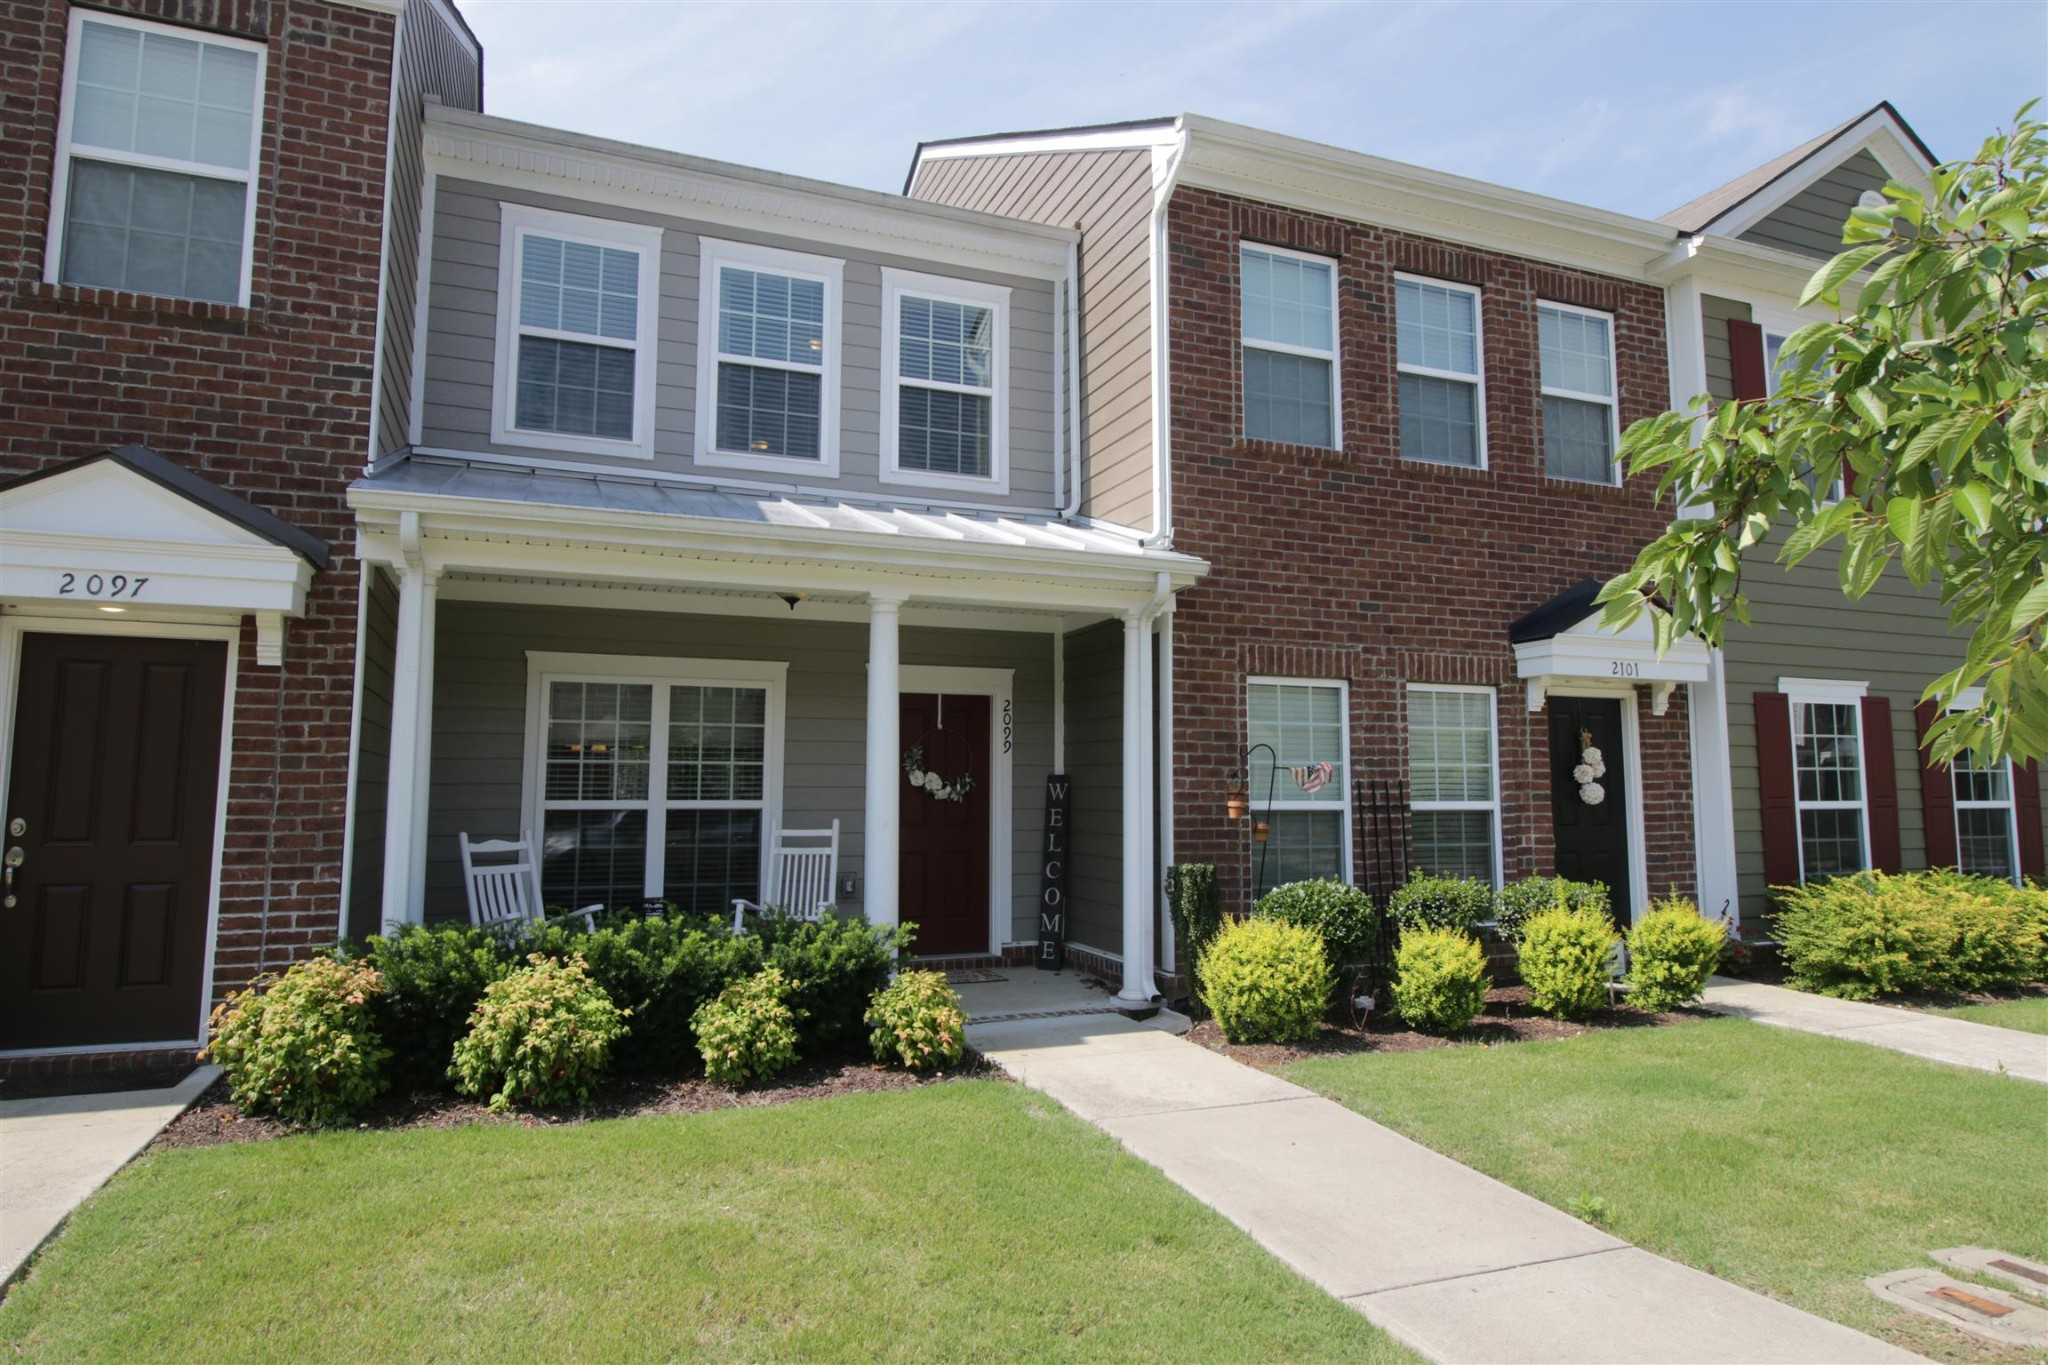 2099 Hemlock Dr, Spring Hill in Williamson County, T County, TN 37174 Home for Sale